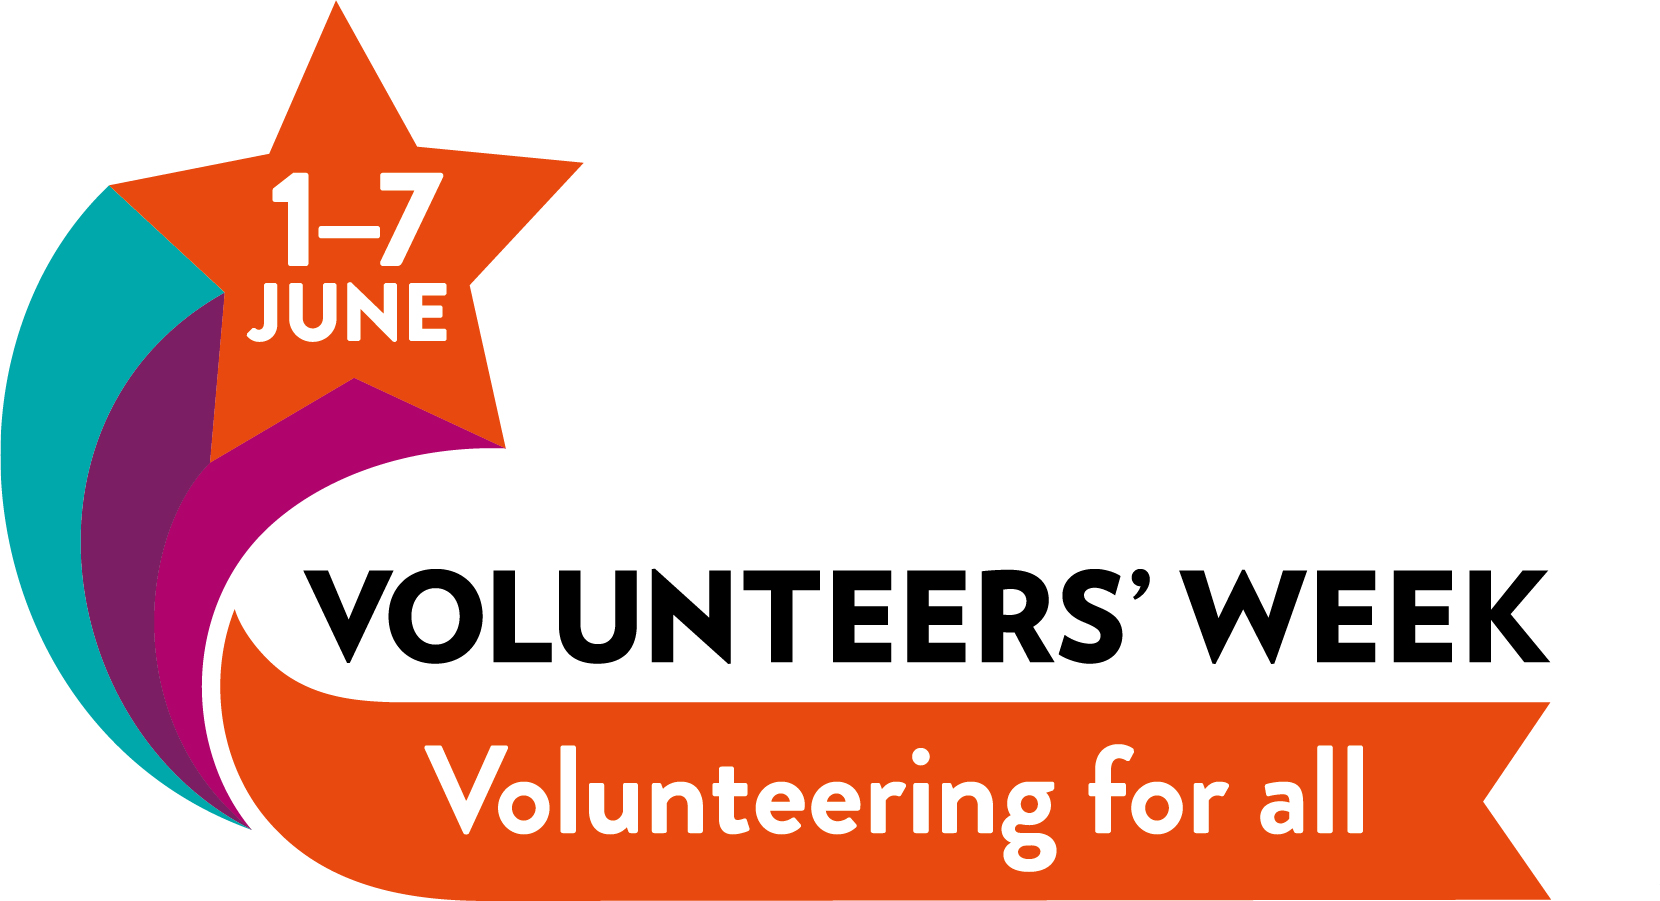 Volunteers' Week - 1st - 7th June 2018